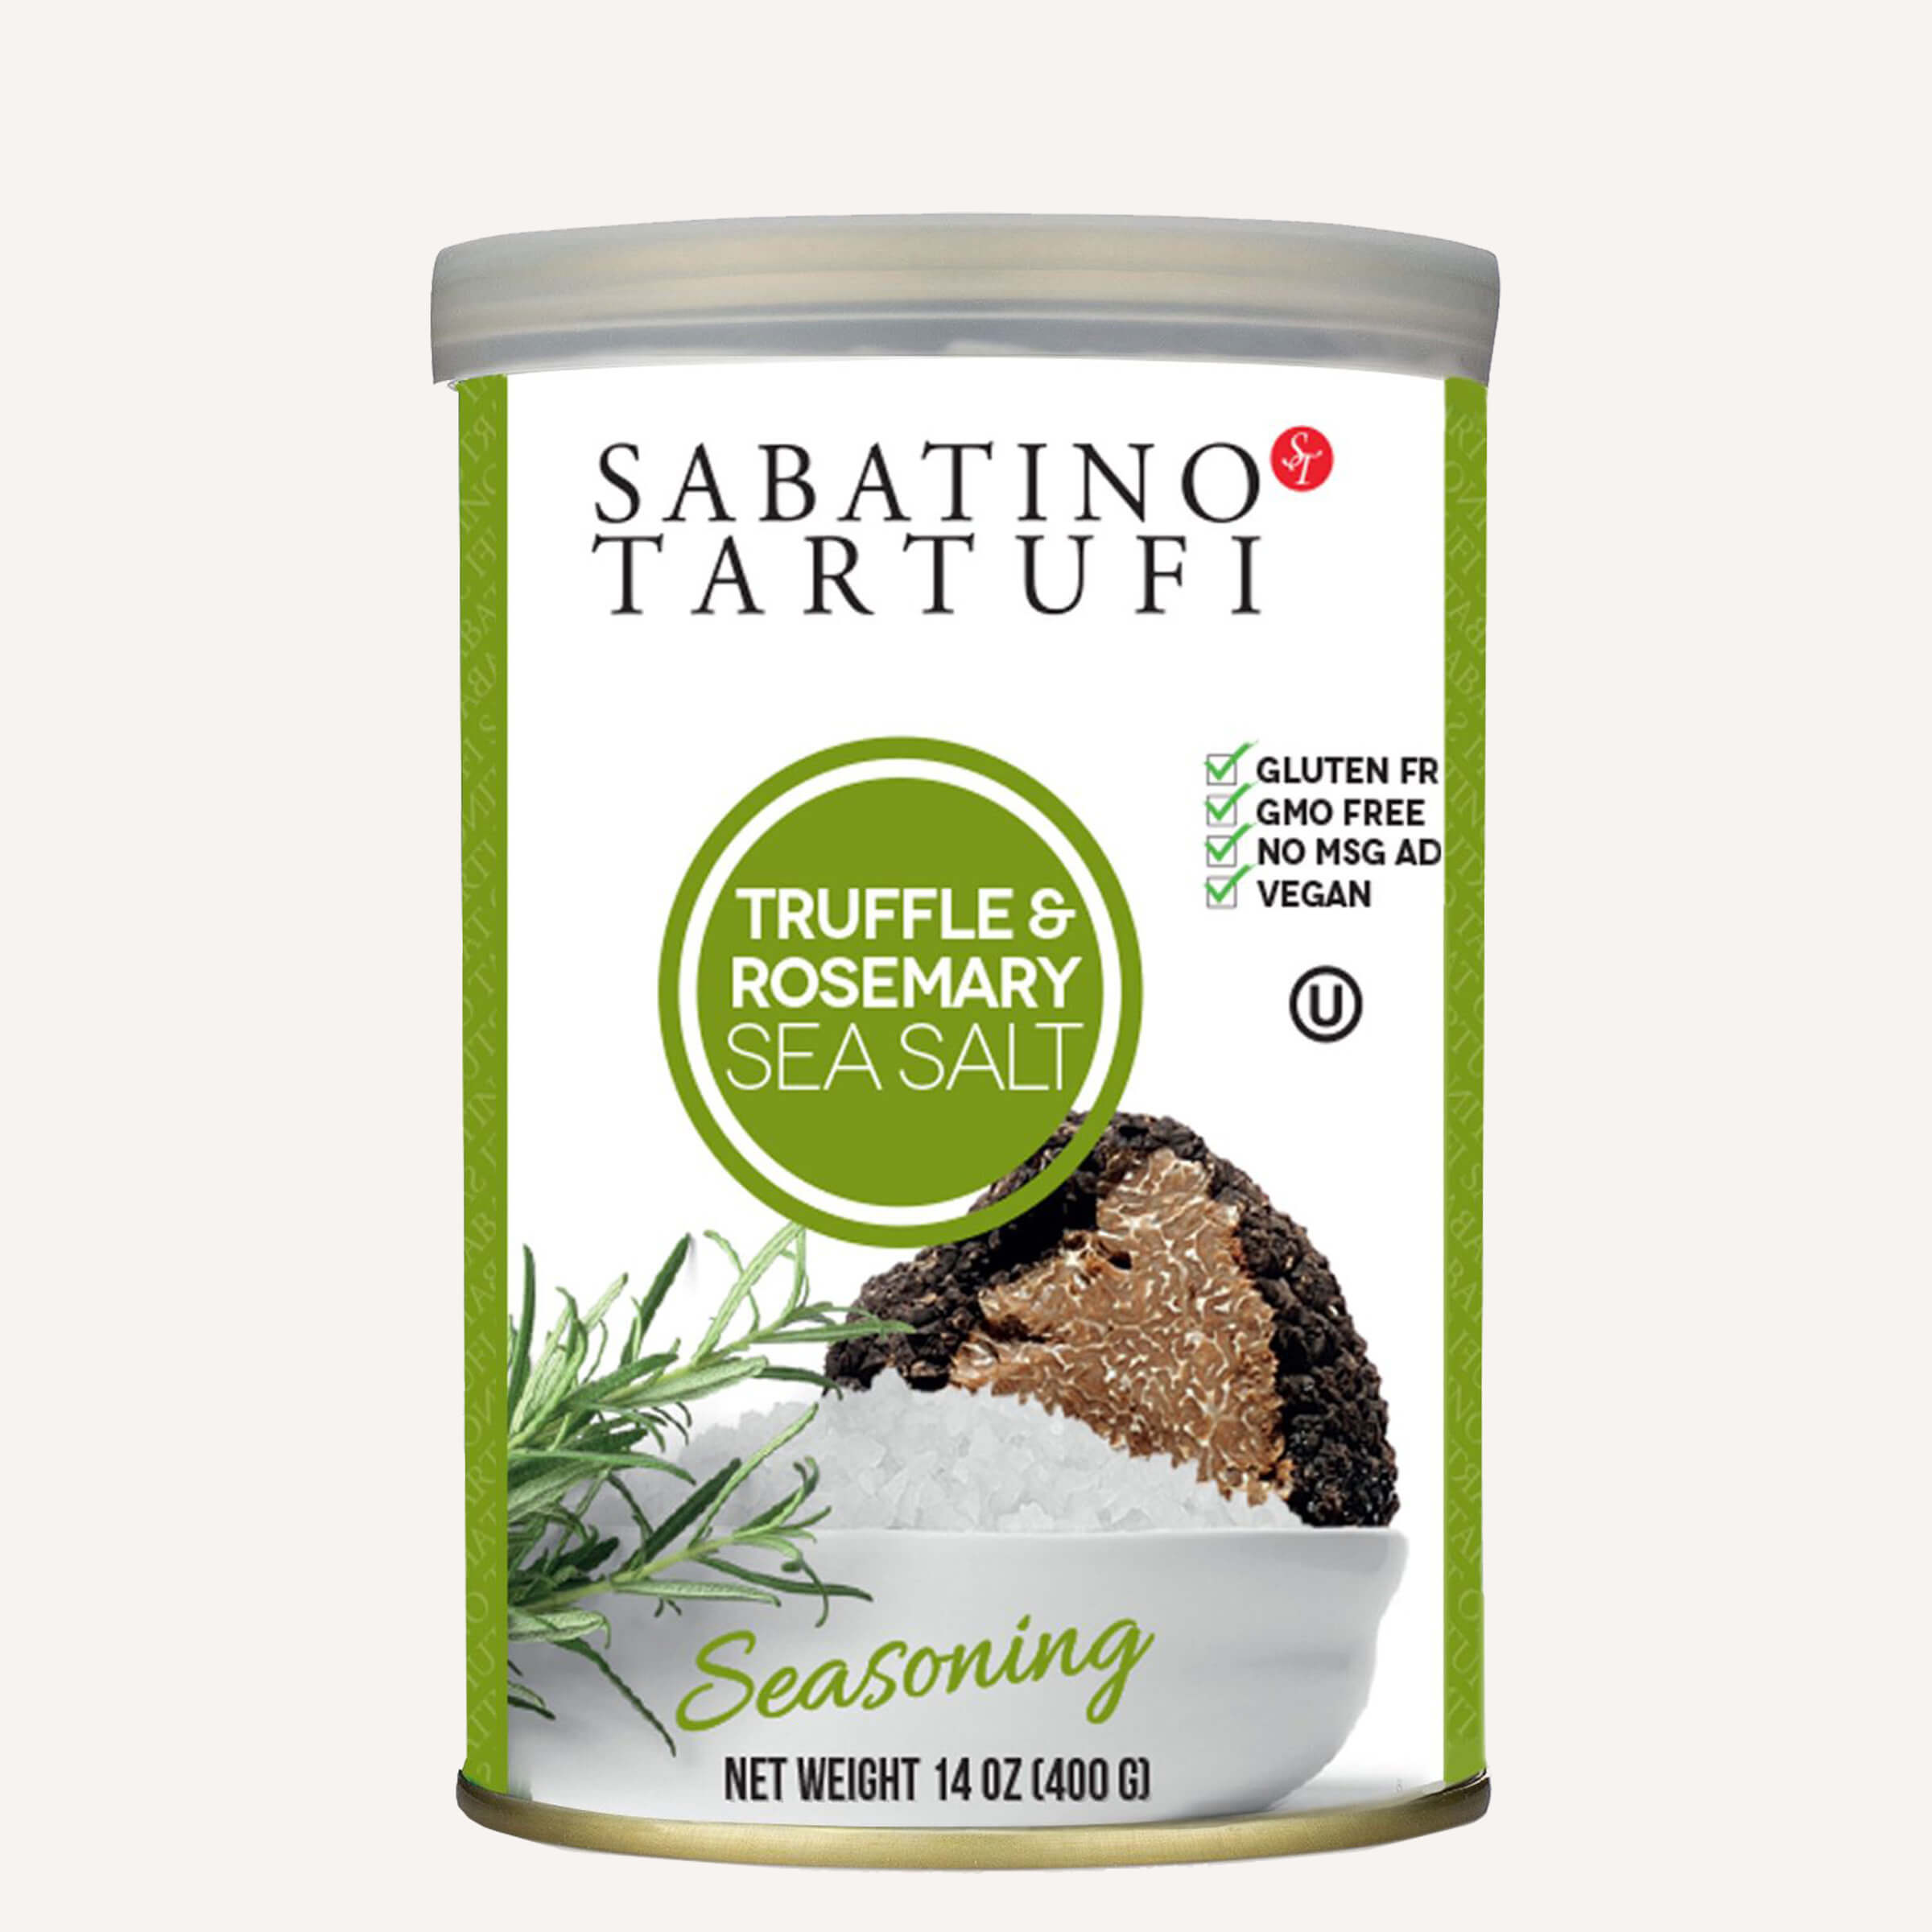 Truffle & Rosemary Sea Salt - 14 oz <br> Single Unit